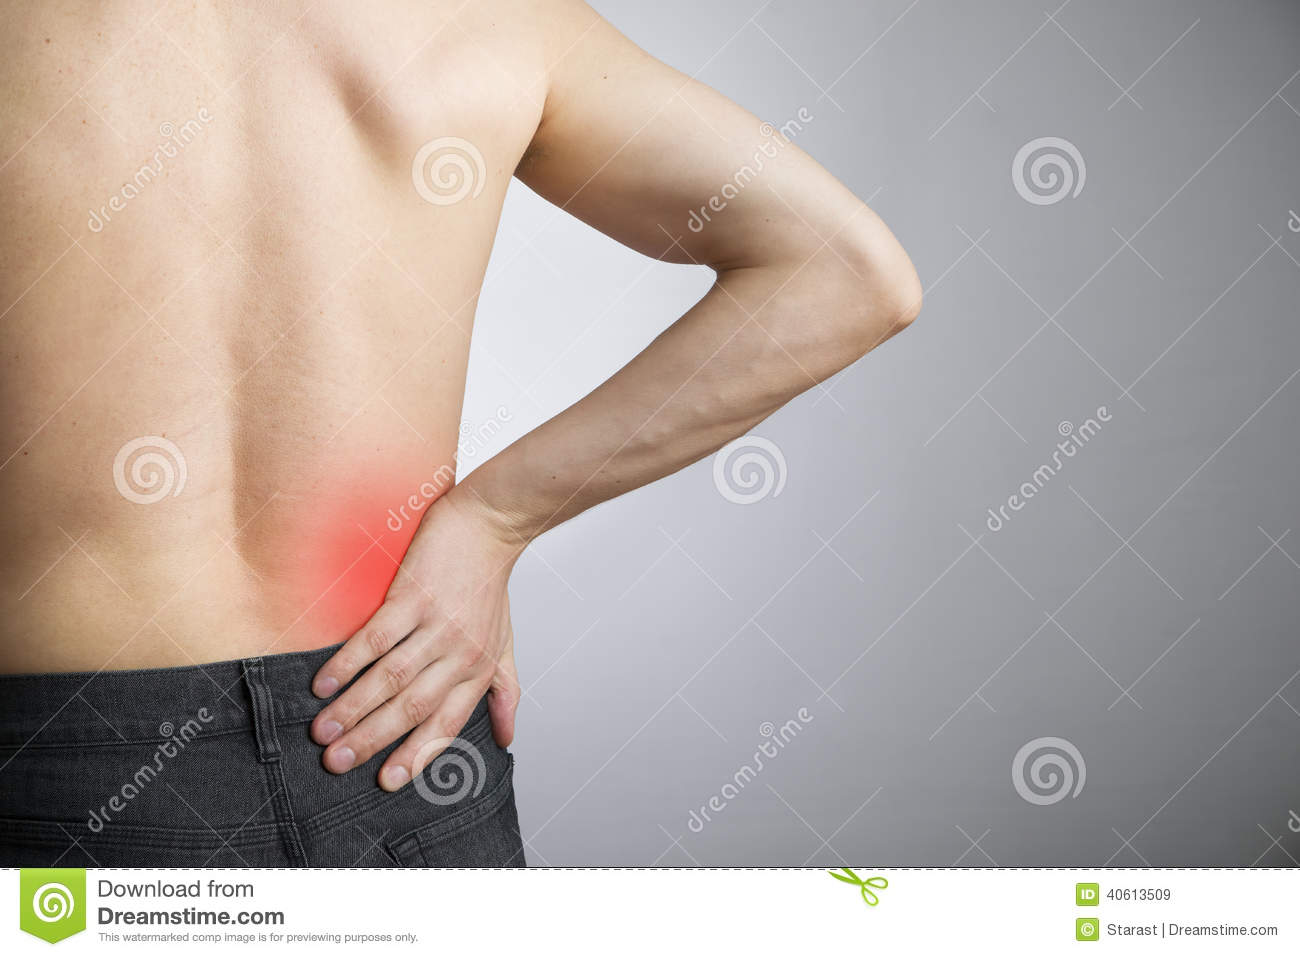 Lower back pain cialis